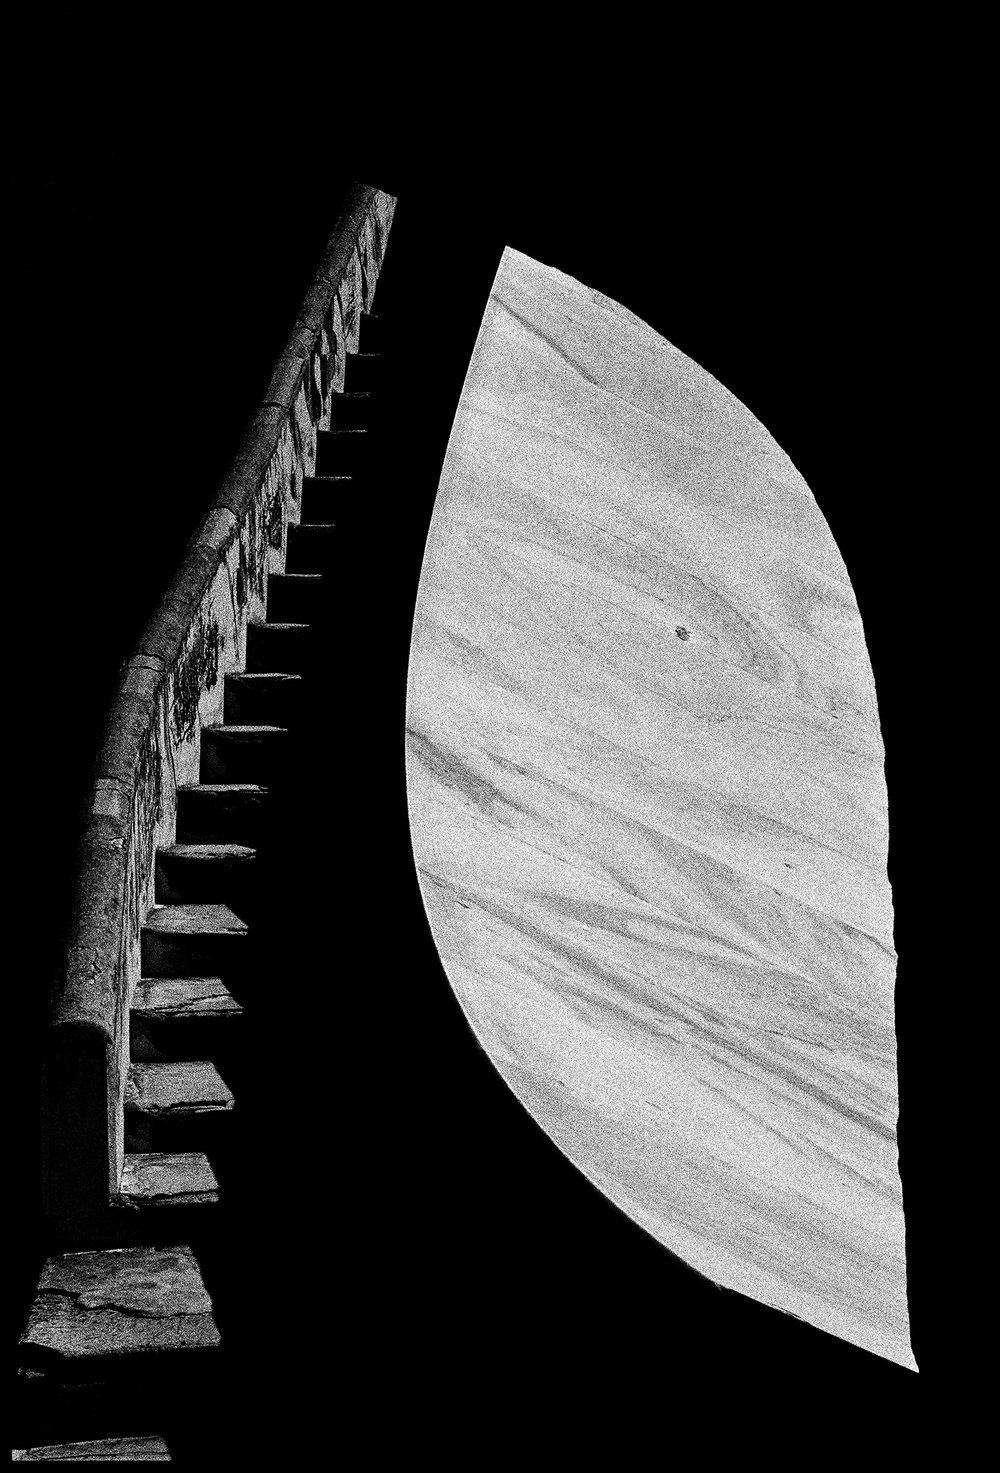 132_GALLERY_Jantar-Mantar-74_SURFACEMAG-SIMON-CHAPUT-PHOTOGRAPHY.jpg